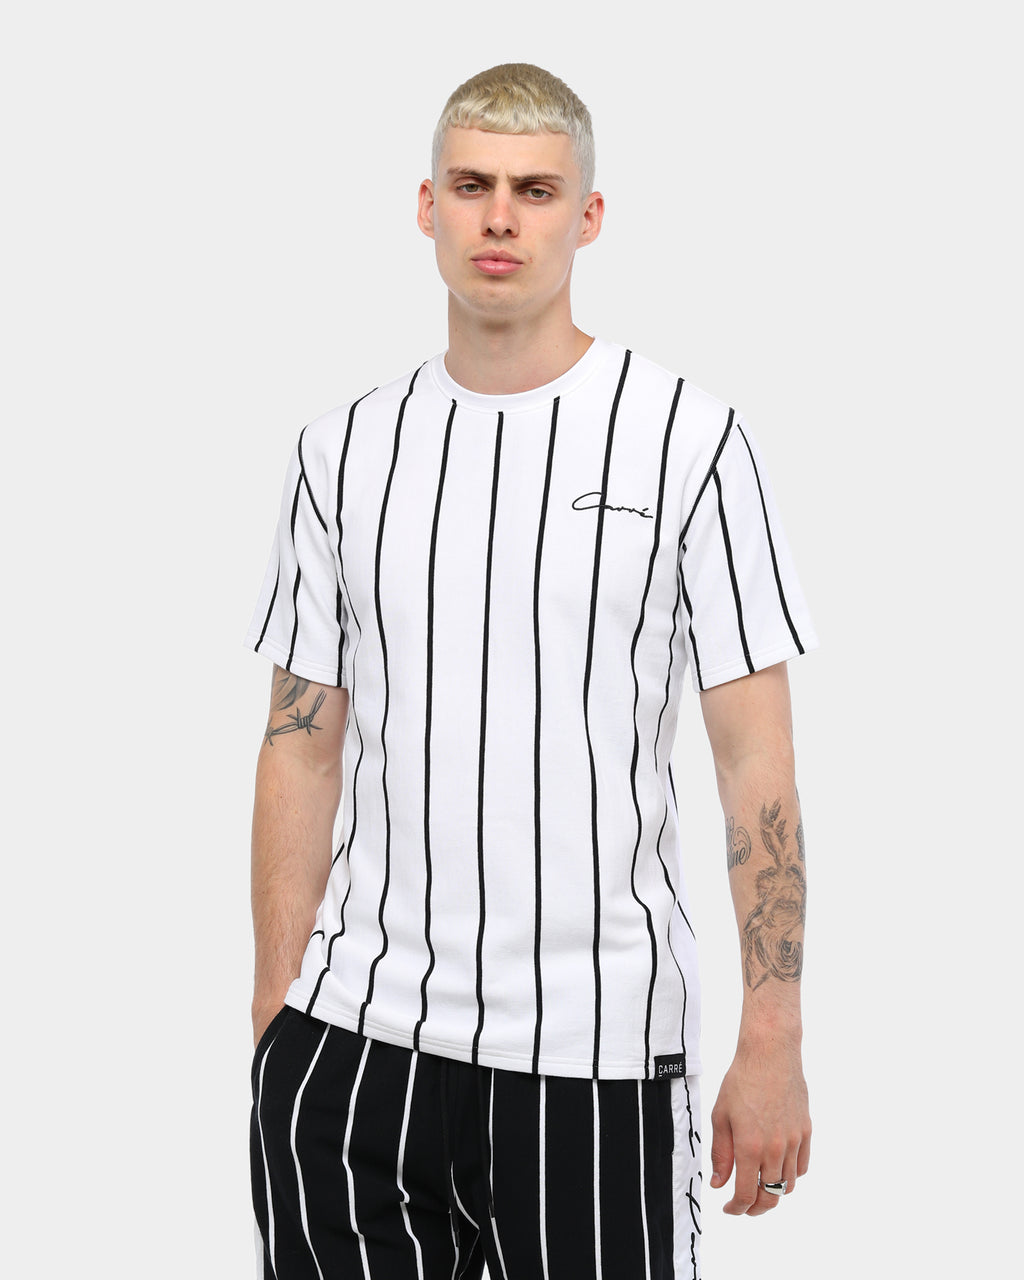 Carré Bande Practice Droptail Tee White